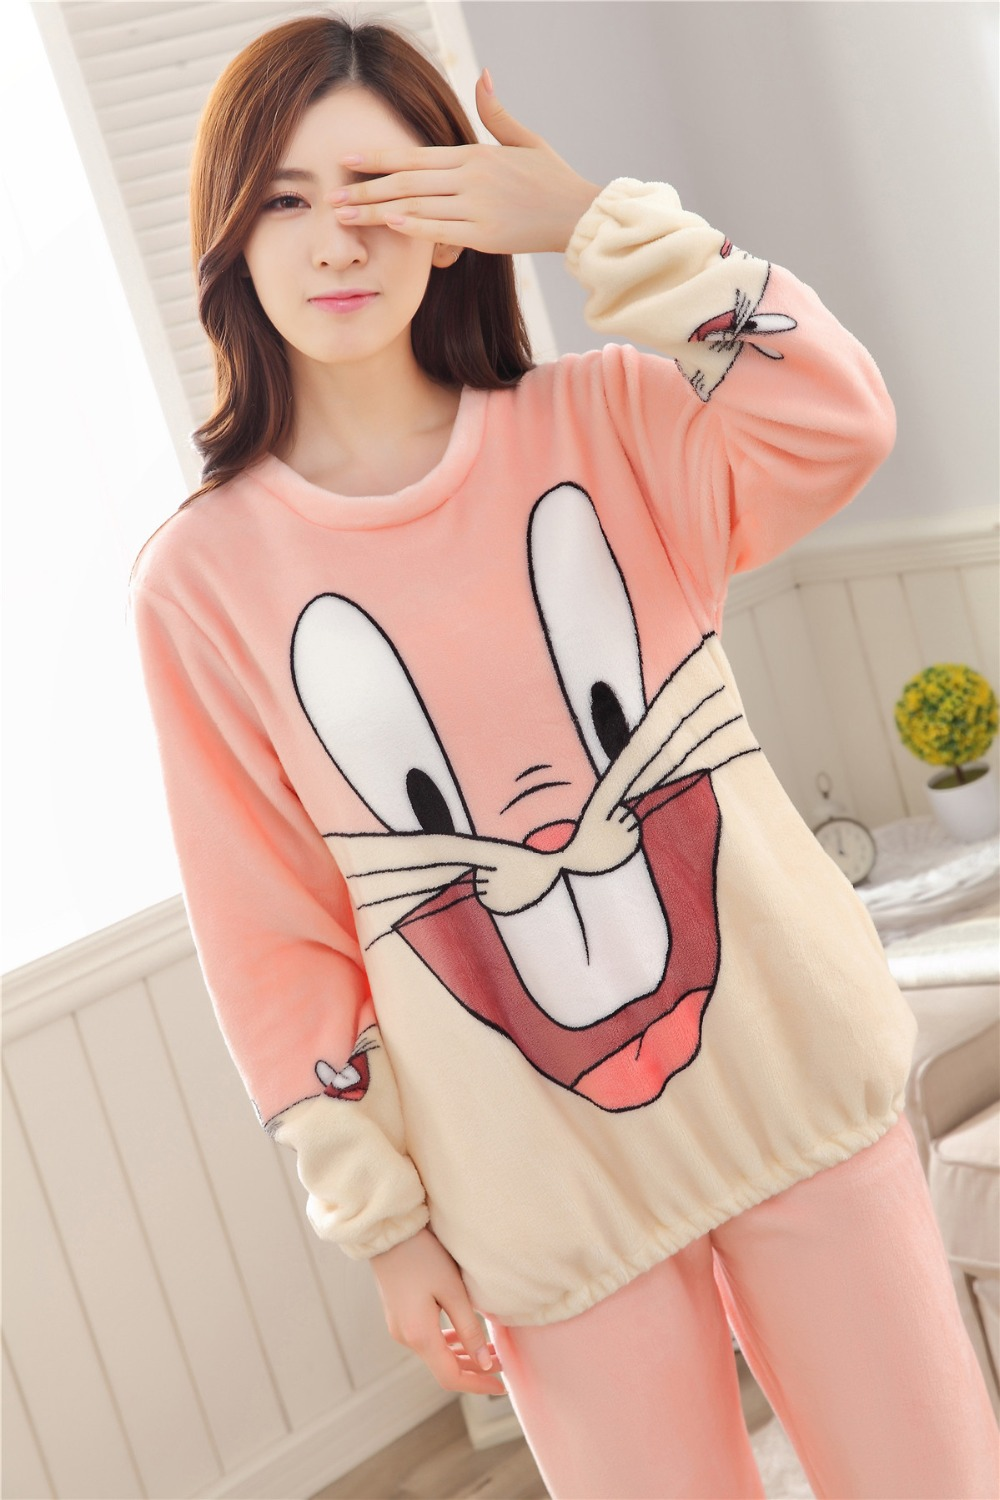 Women Pajamas Set For Autumn cute cartoon pink Women Clothes Sleepwear Nightgown For Women Long Sleeve And Pants Hot Sale pijama 60